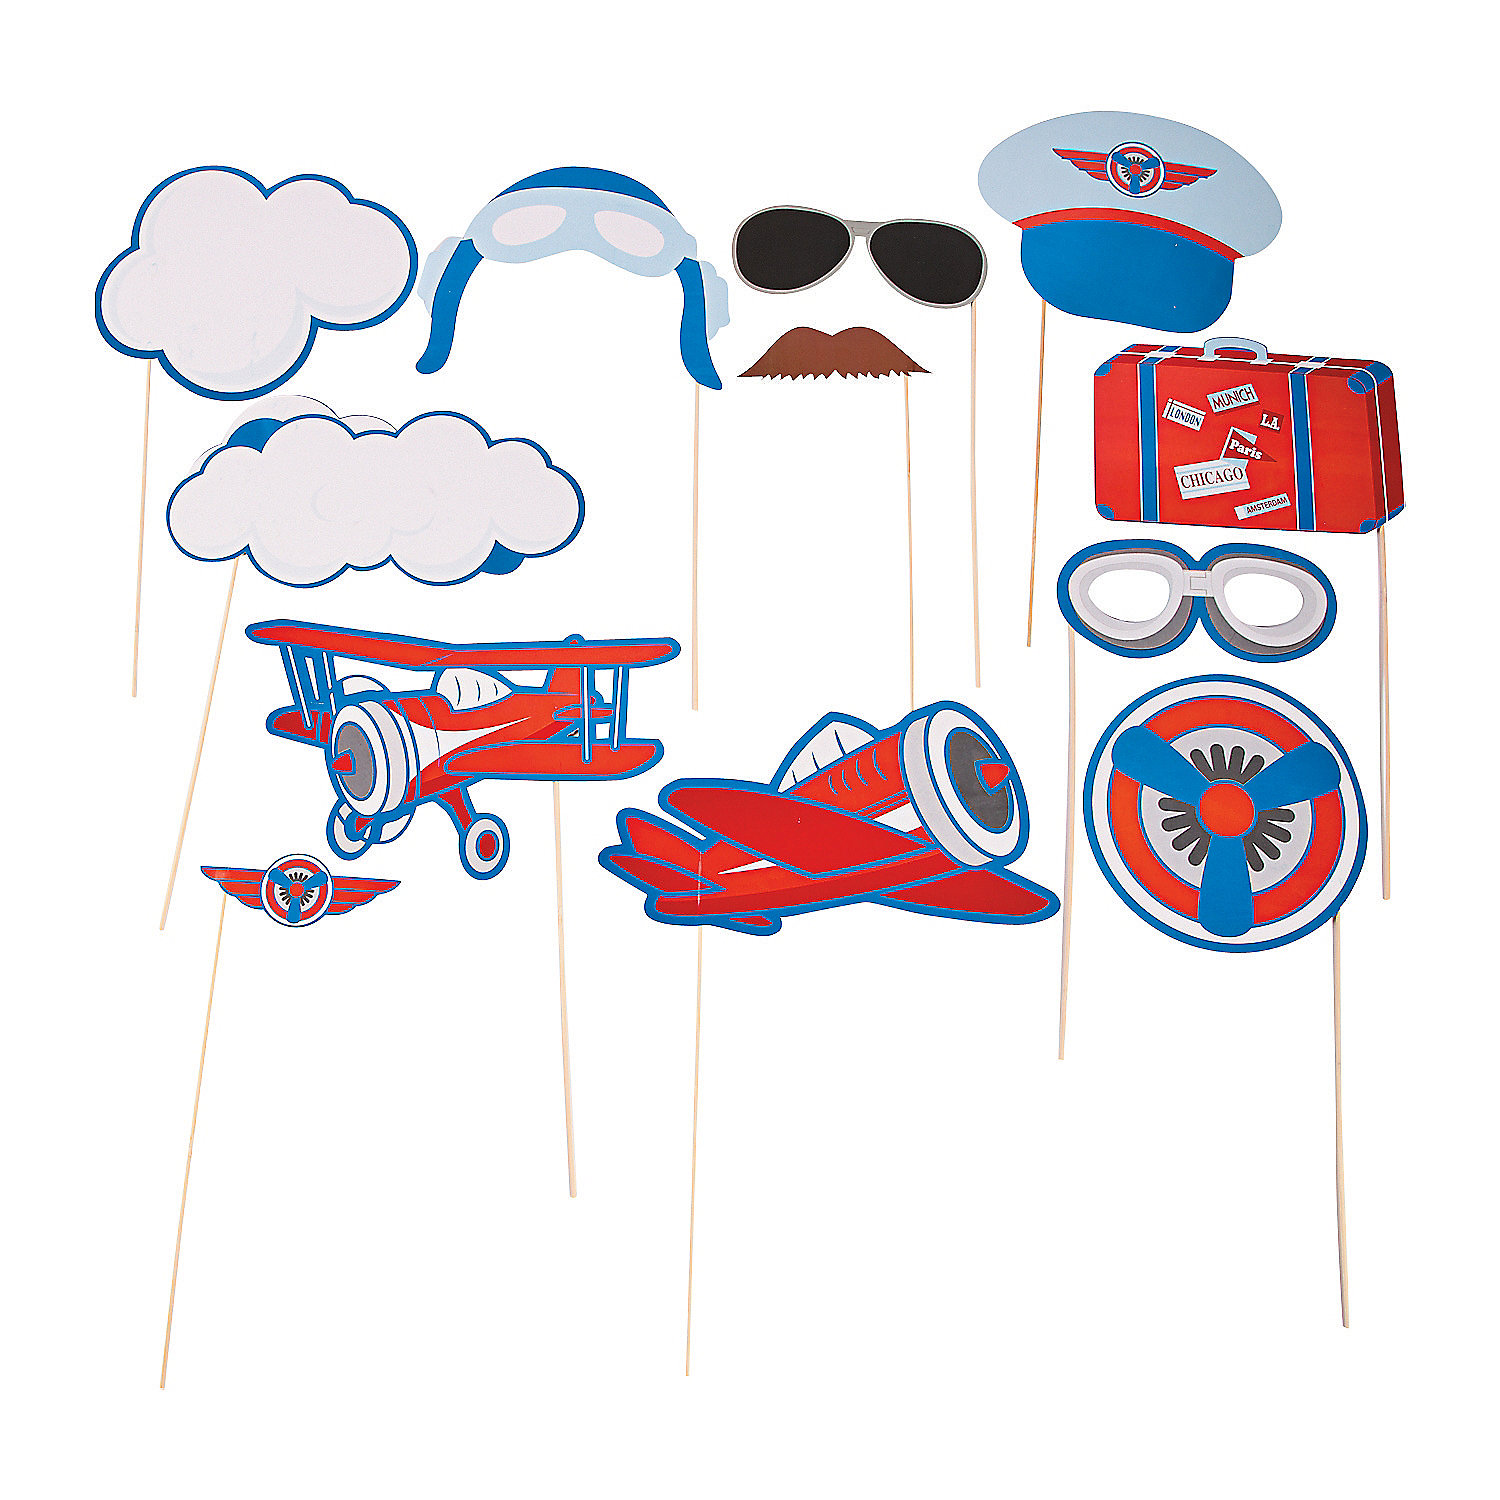 35 Pilot Party Props Airplane Party Diy Printable Photo Booth: Up & Away Photo Stick Props, Photo Booth Props, Costume